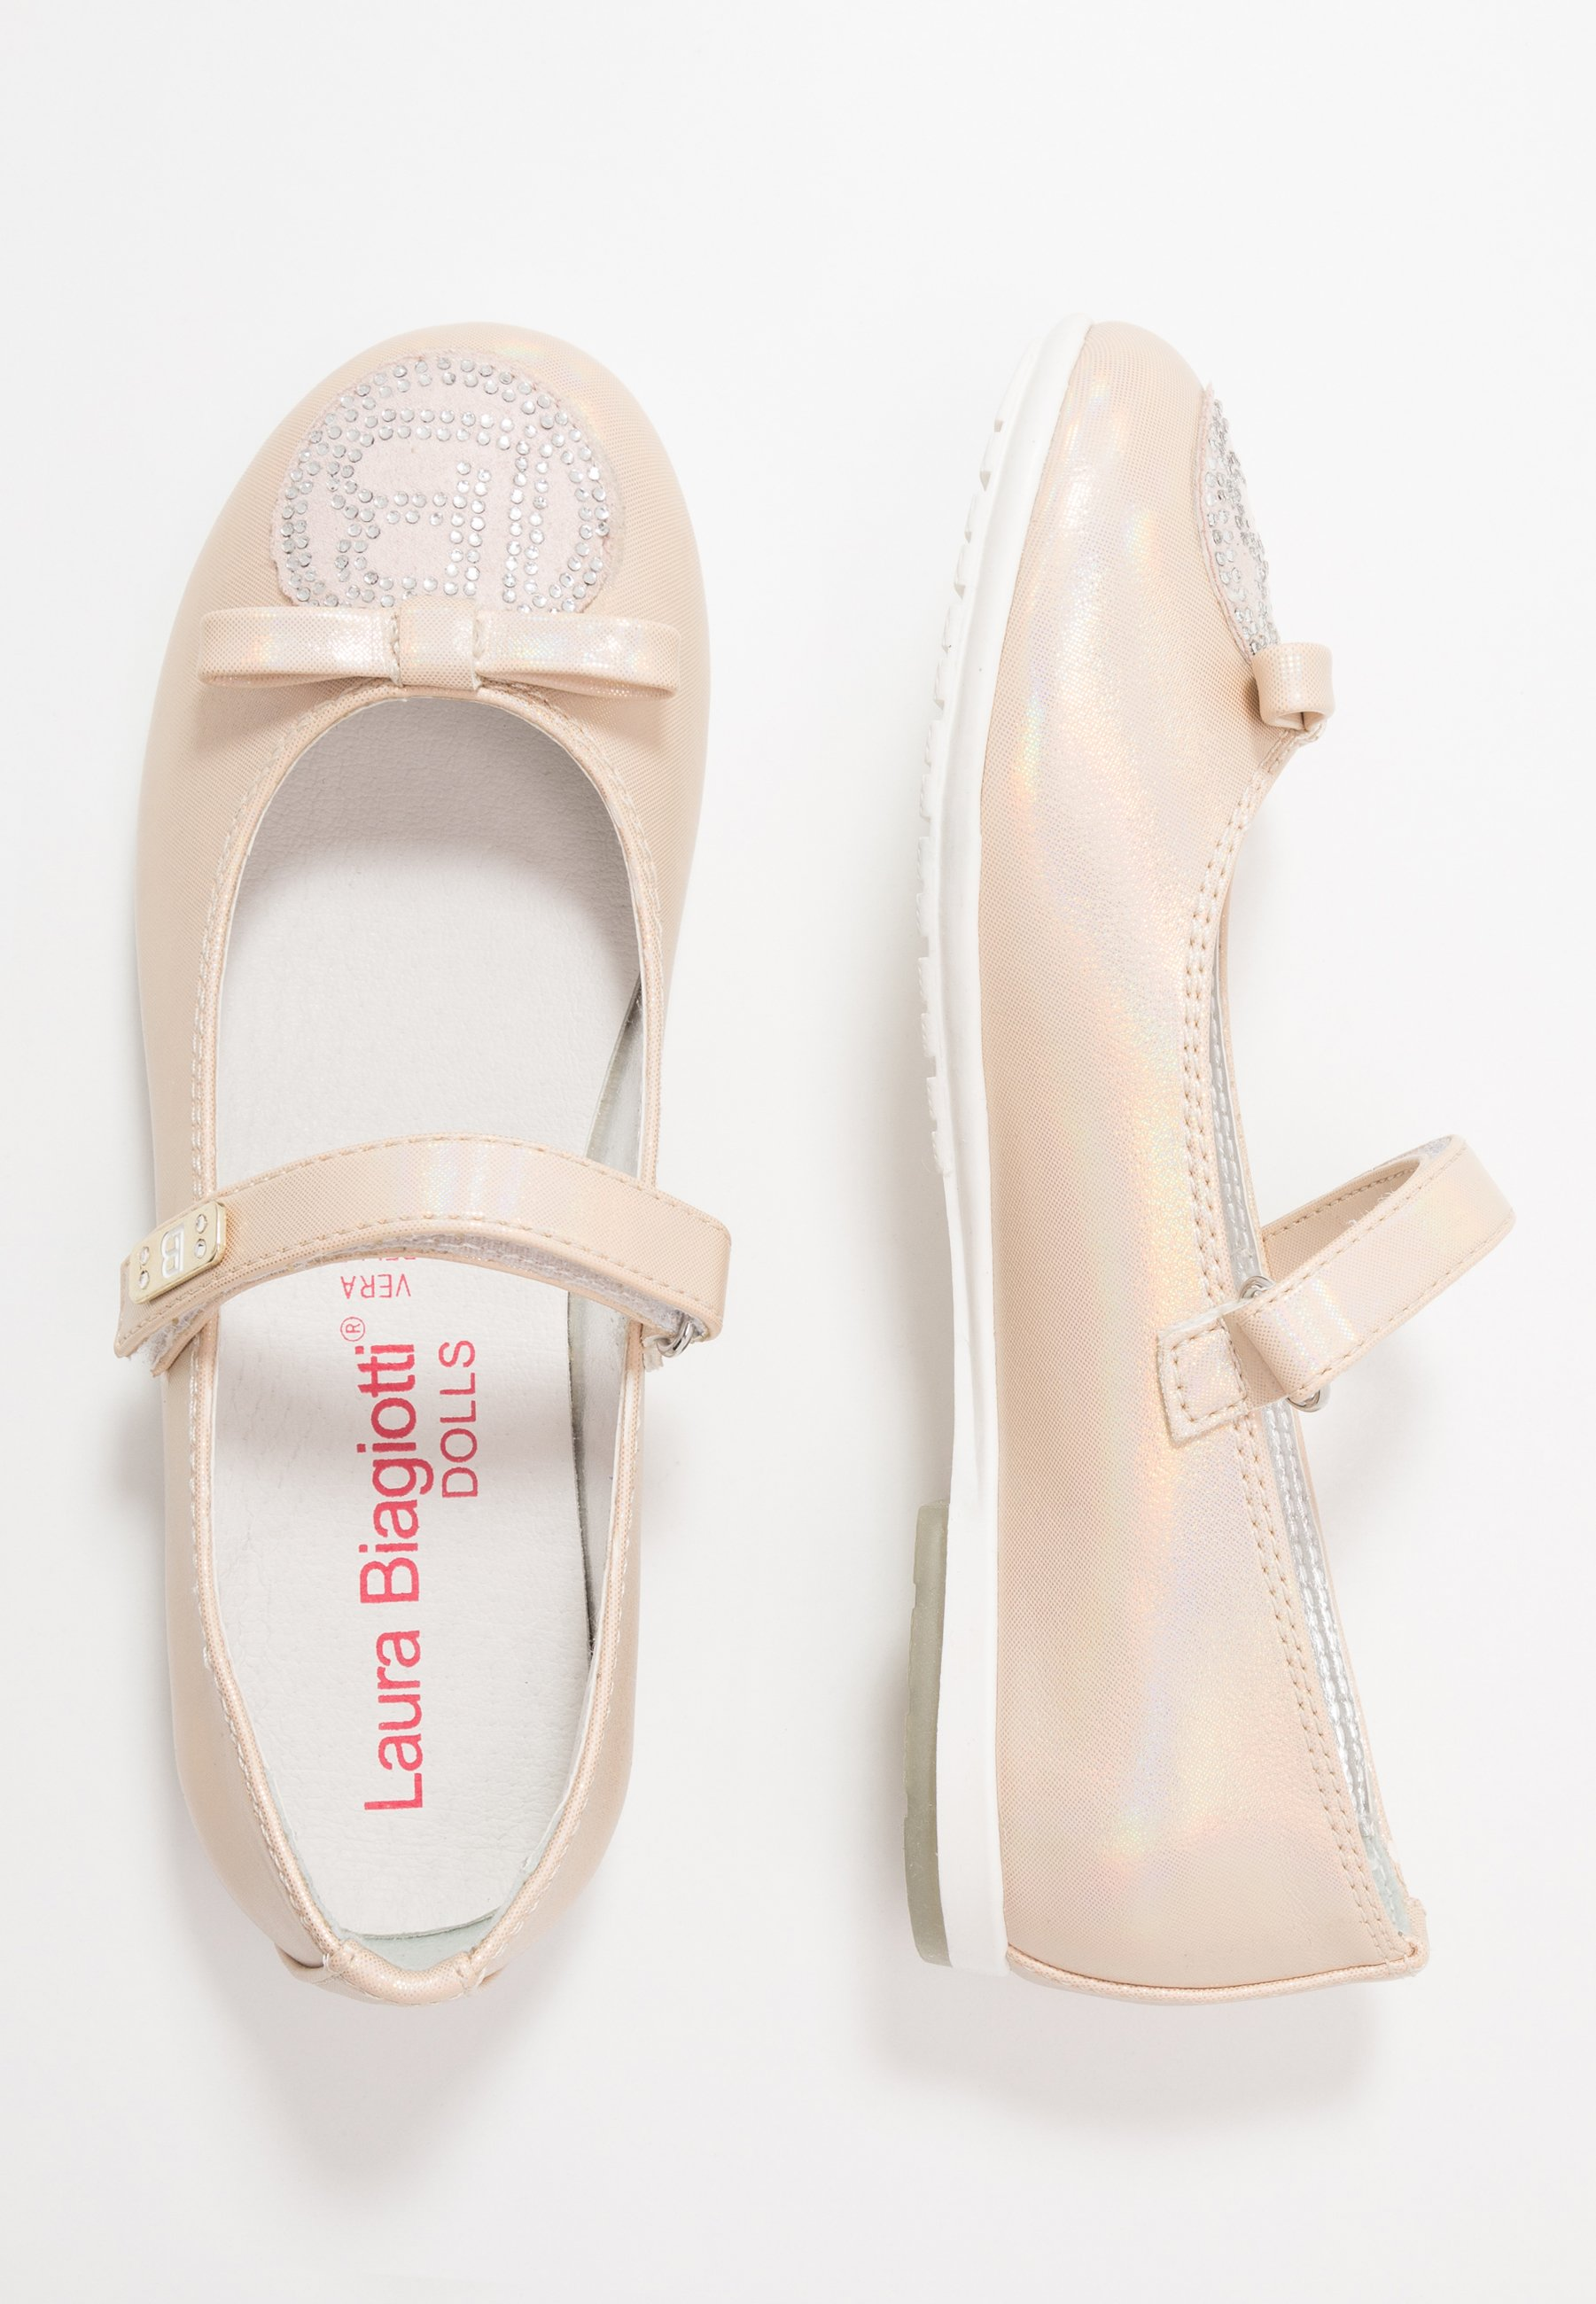 Discount Cheapest Laura Biagiotti Ankle strap ballet pumps - pink | kids shoes 2020 fgGmq